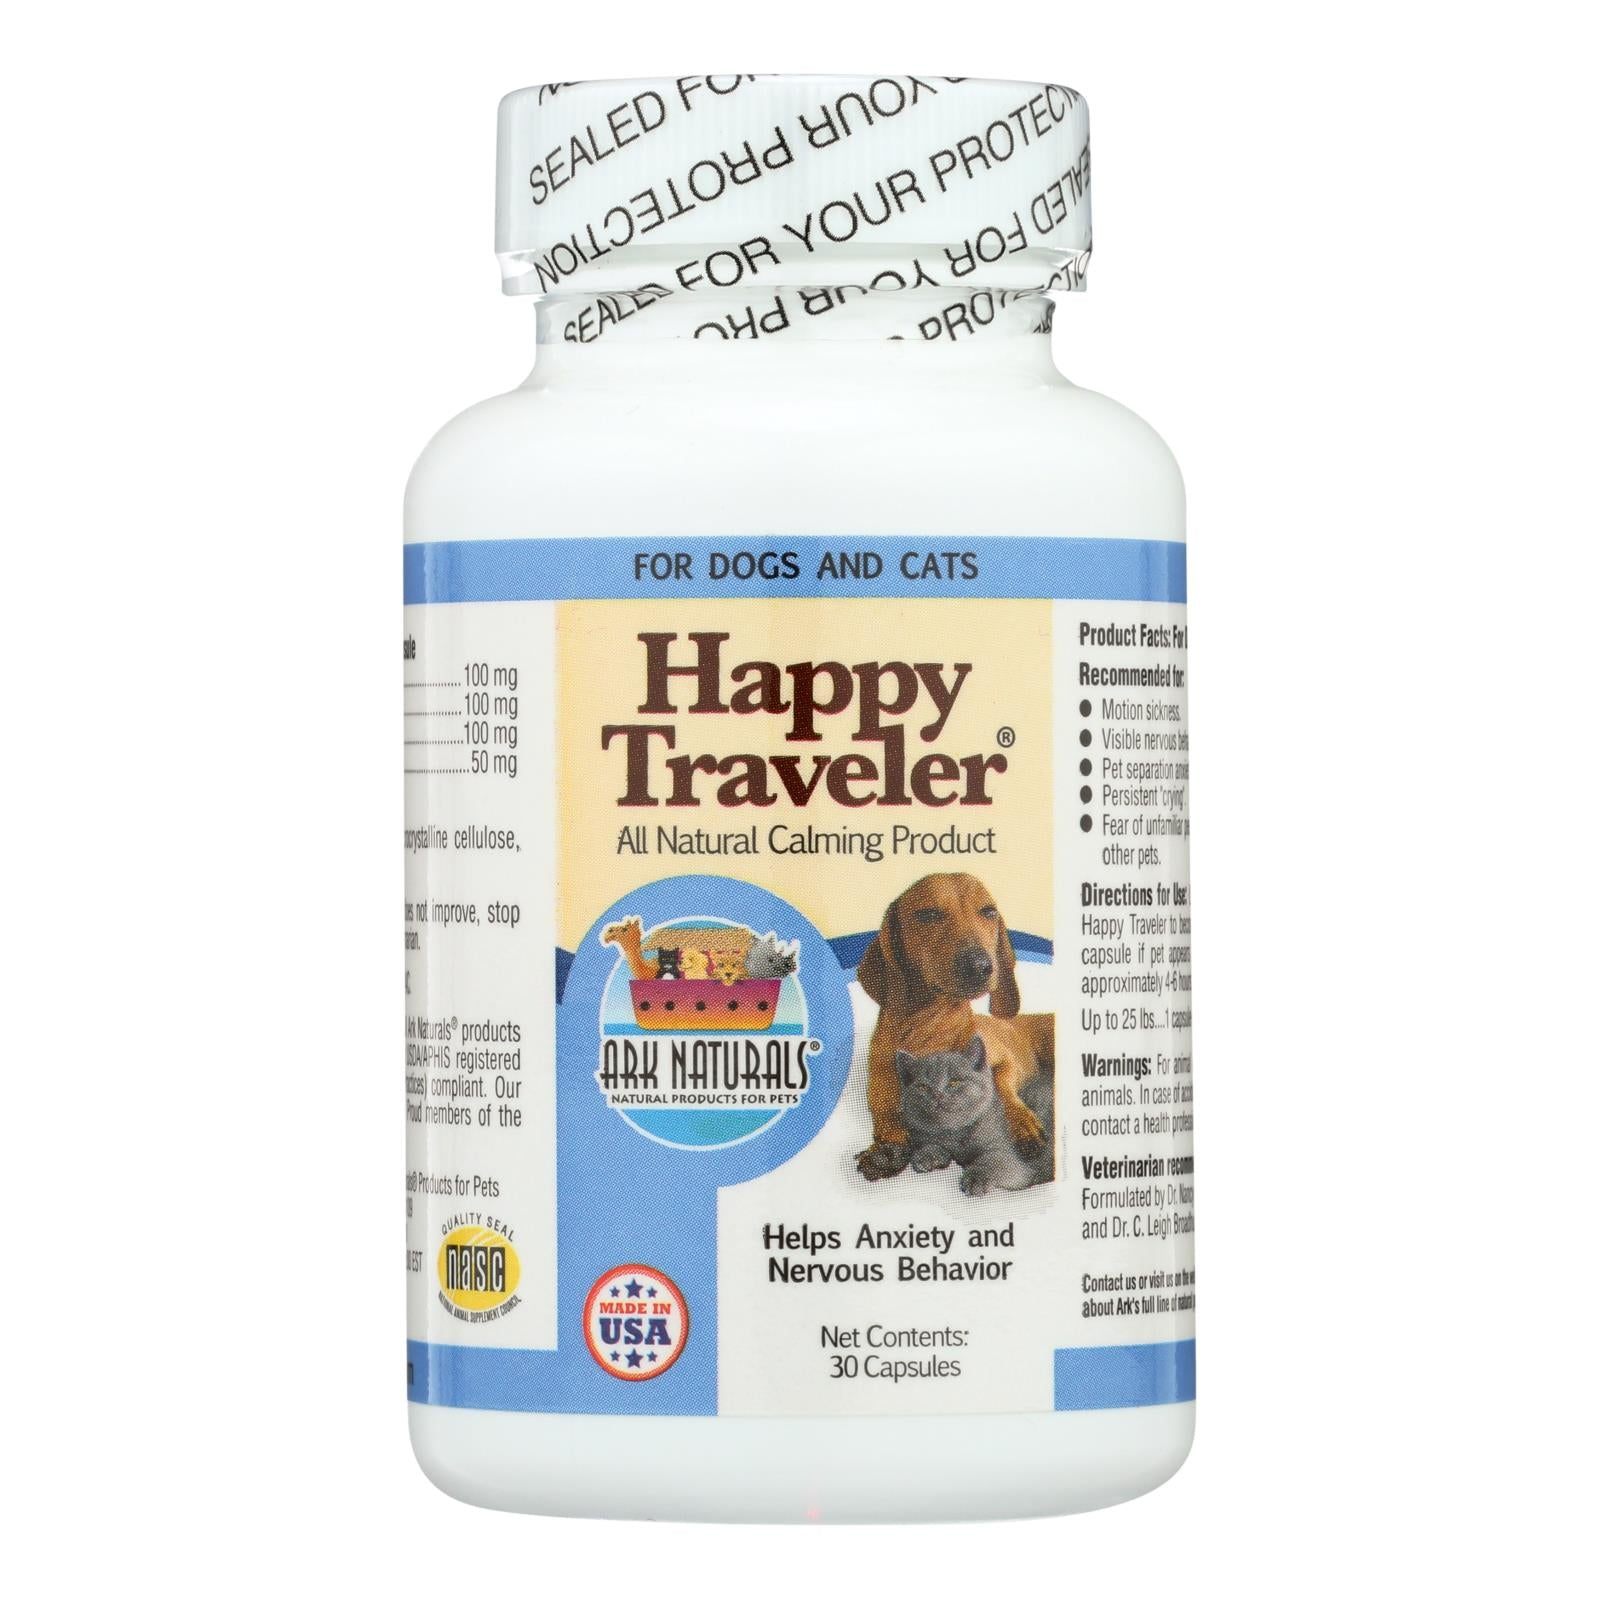 Ark Naturals Happy Traveler For Dogs And Cats - 30 Capsules freeshipping - GreatEagleInc